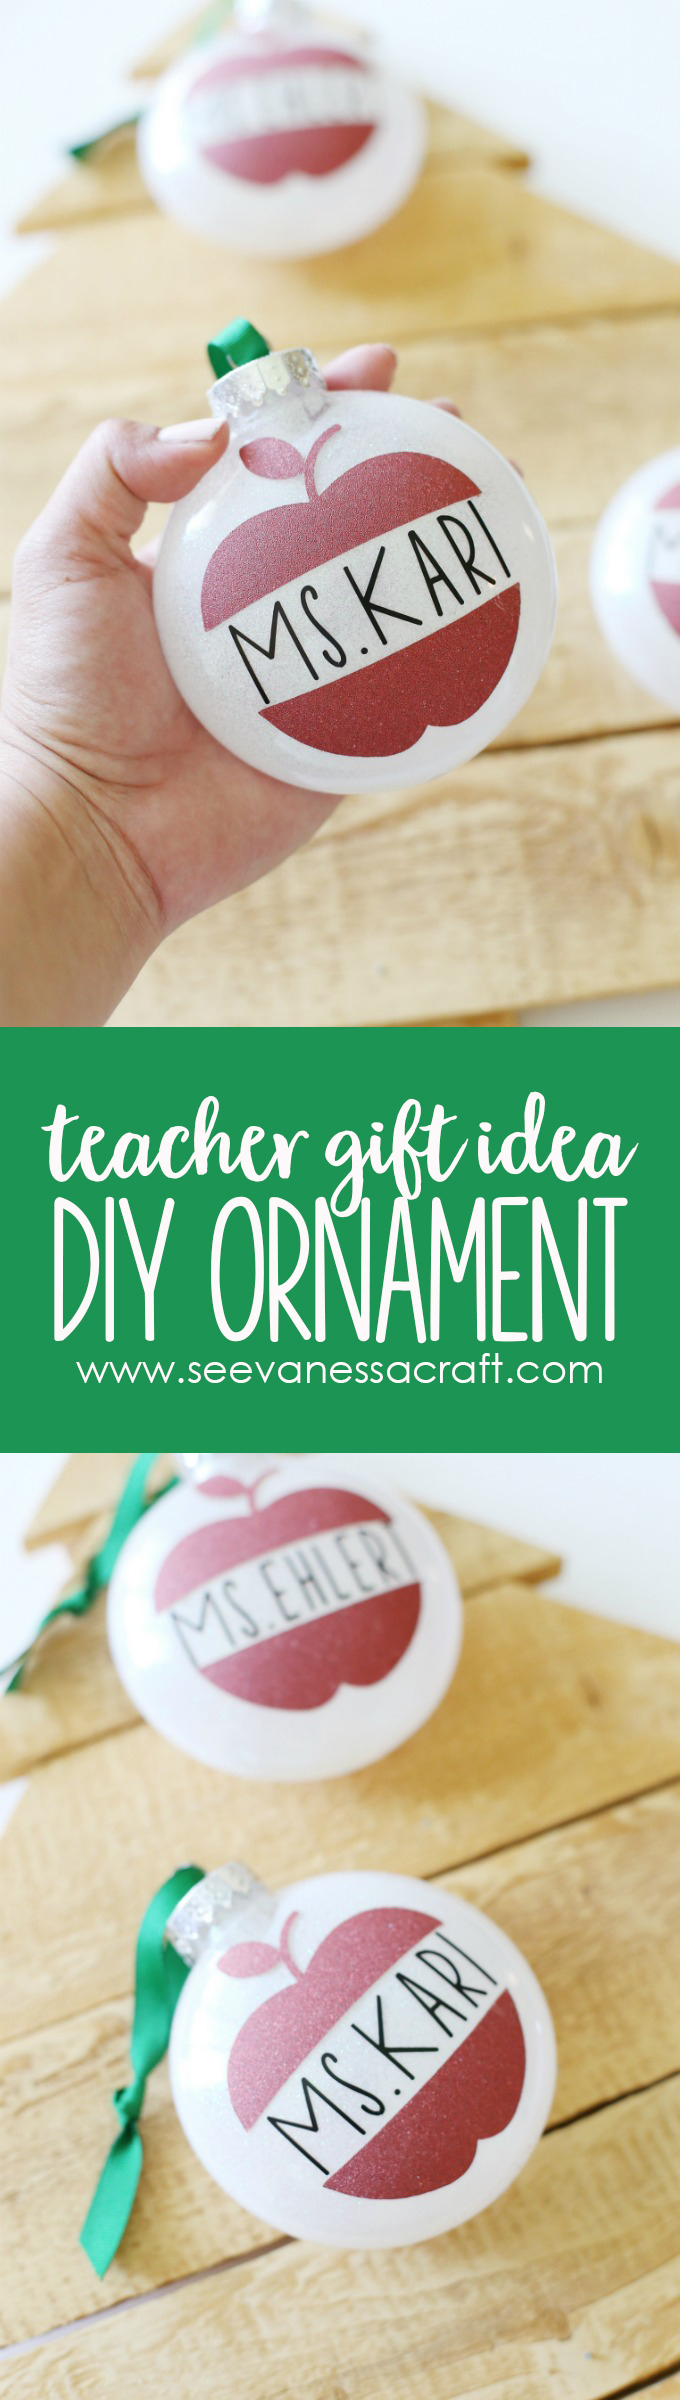 Handmade Ornament Christmas Teacher Gift Idea